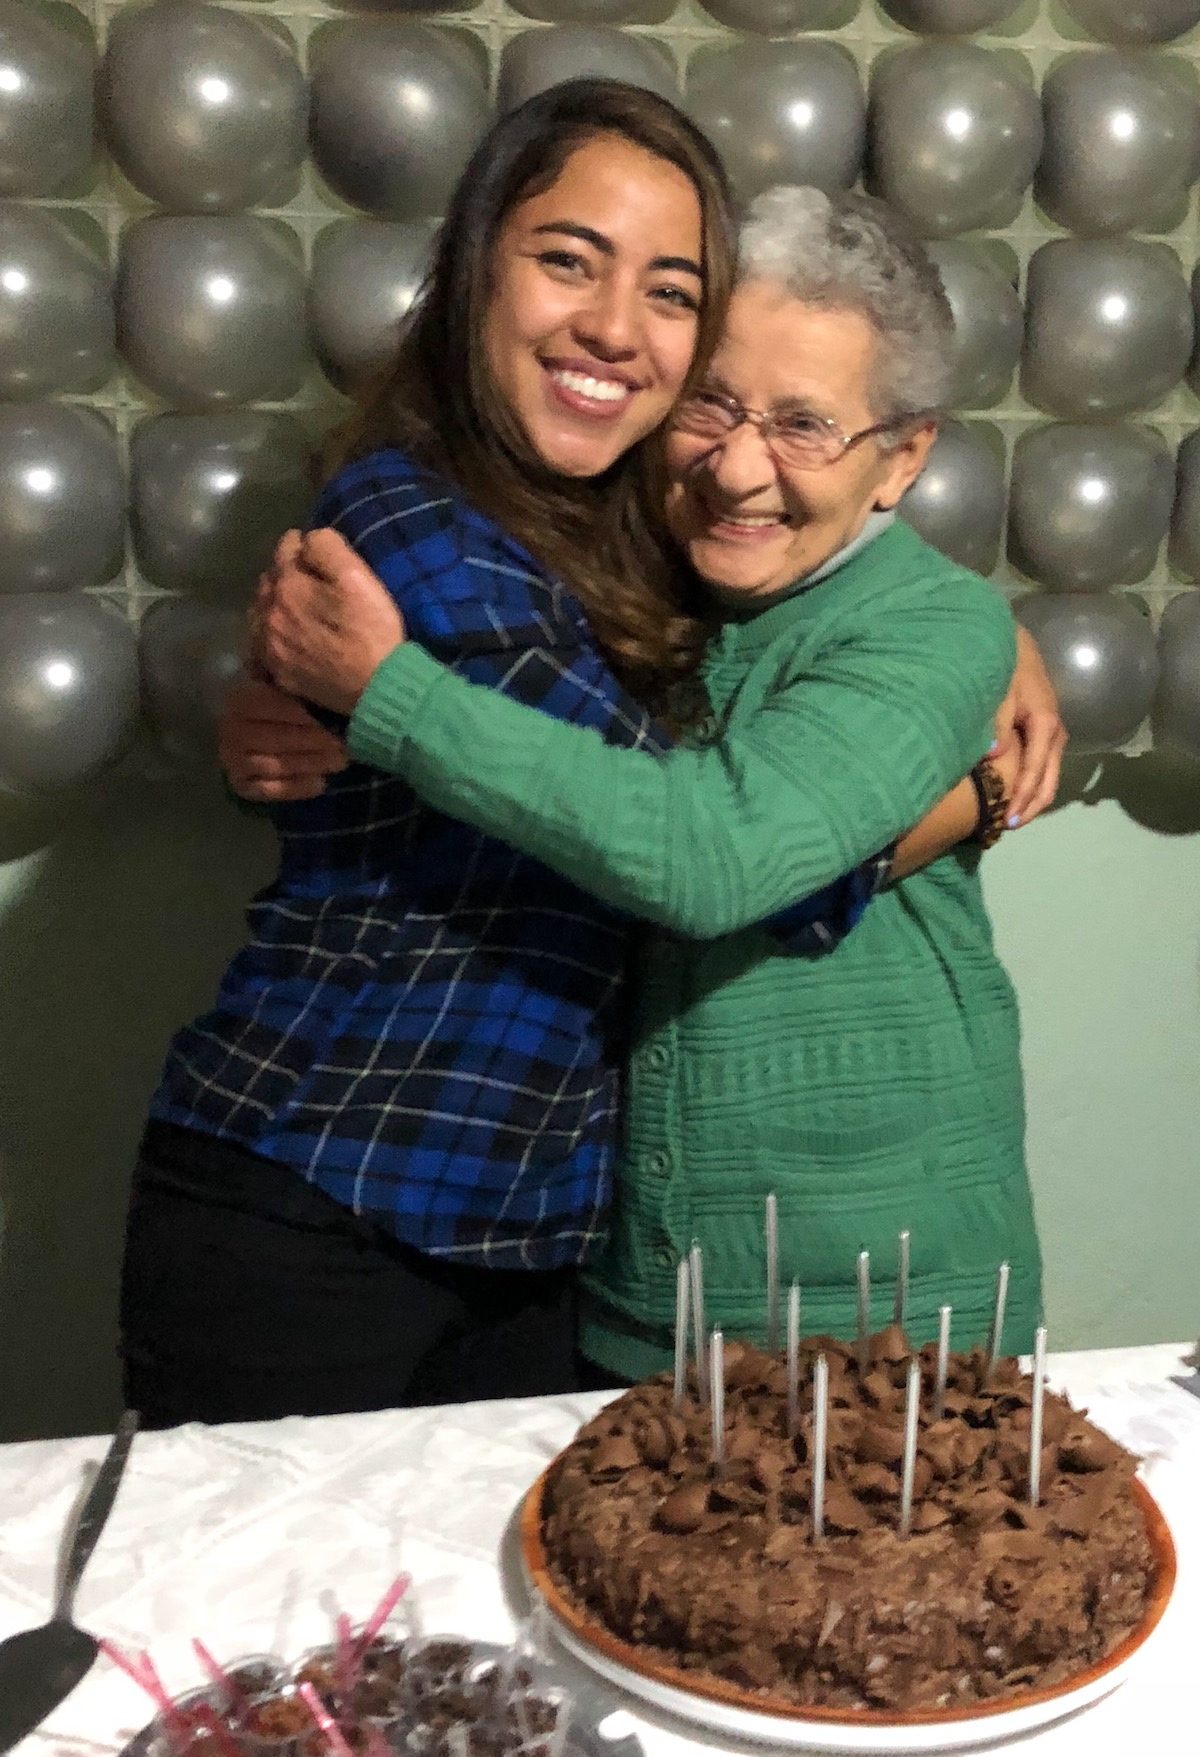 Photo of grandma and granddaughter embracing by birthday cake